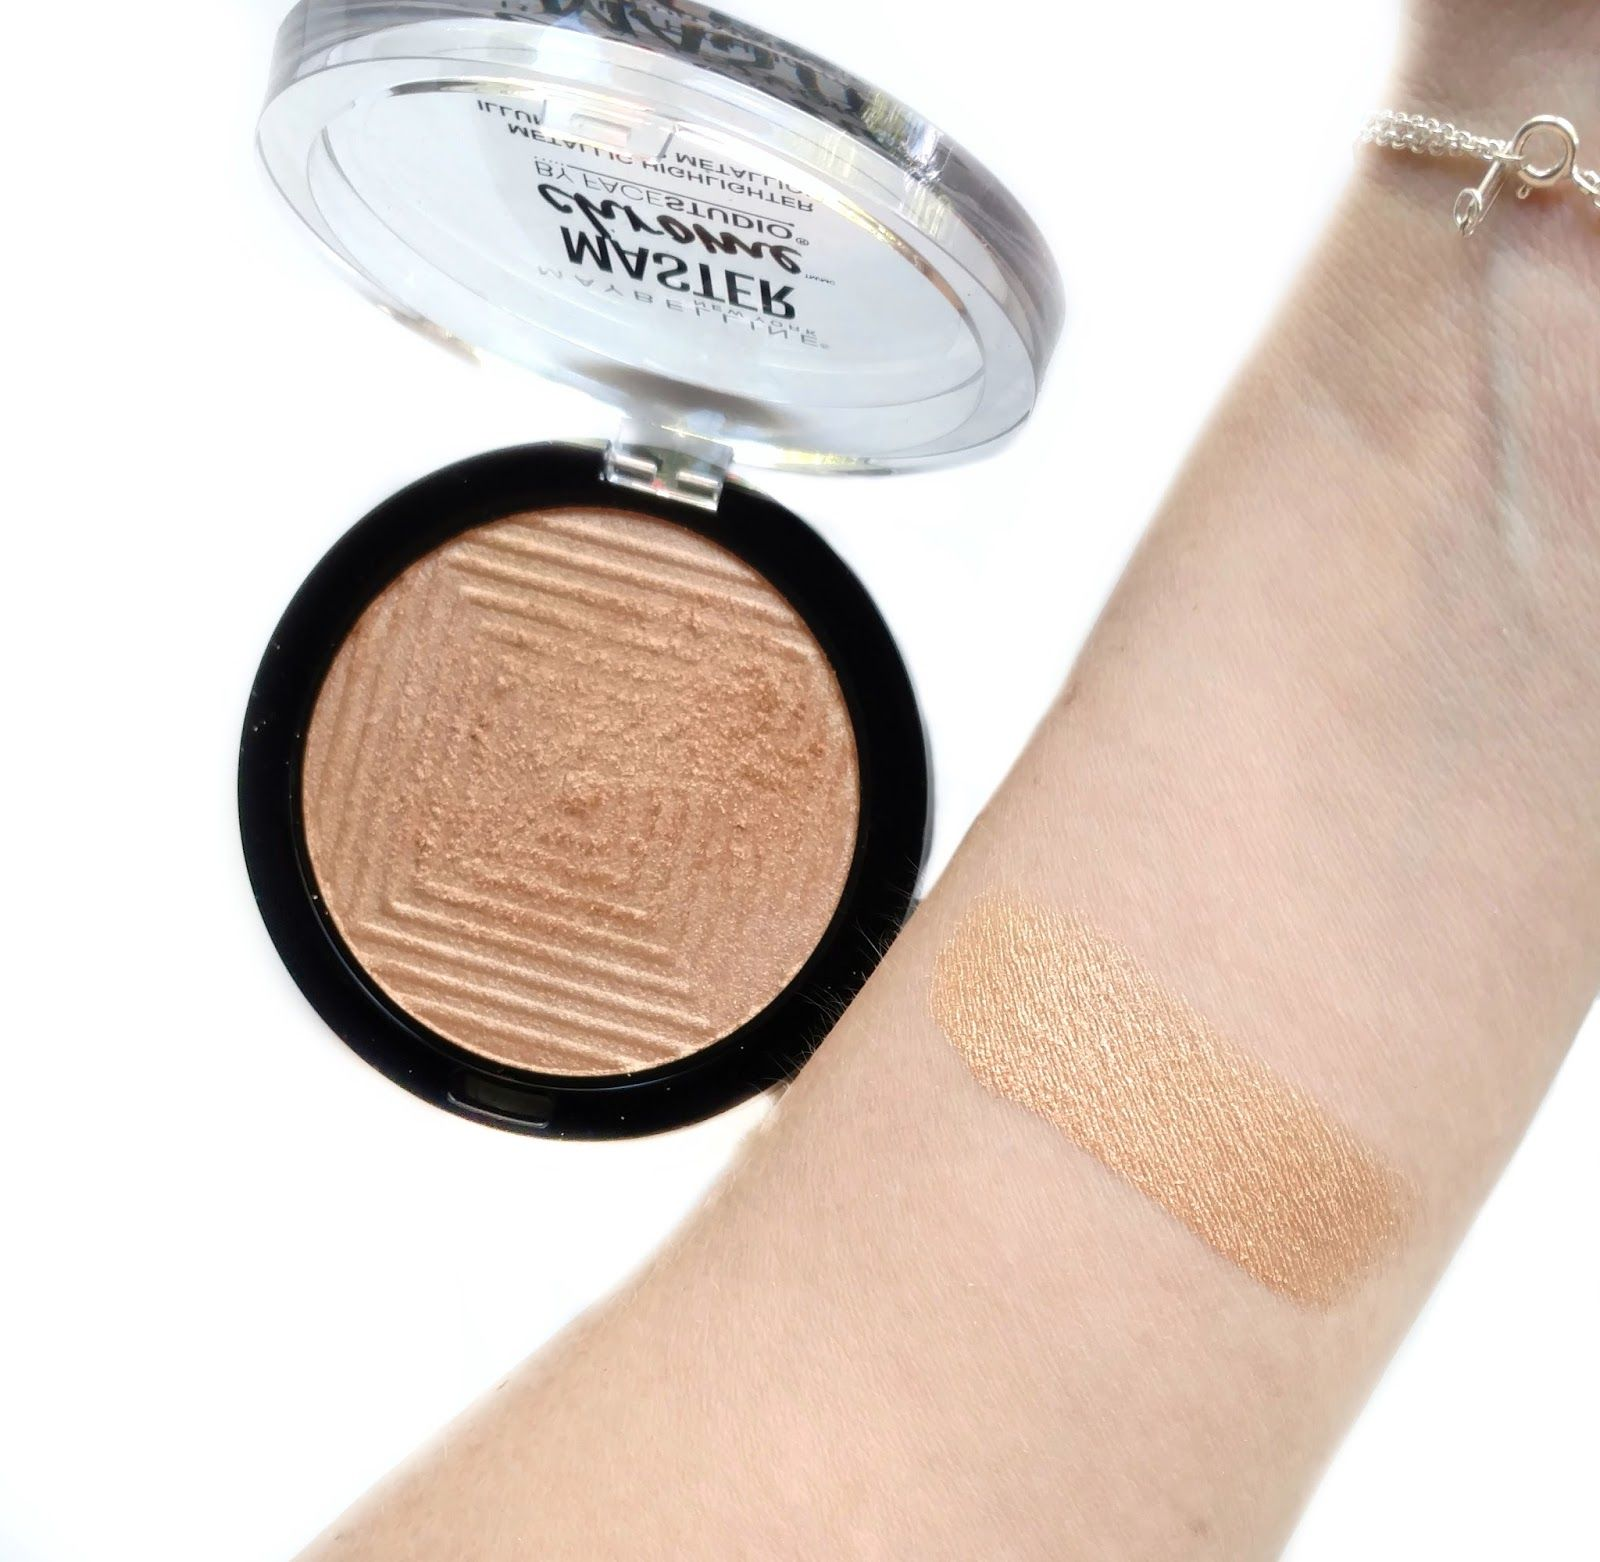 FaceStudio Master Chrome Metallic Highlighter by Maybelline #6